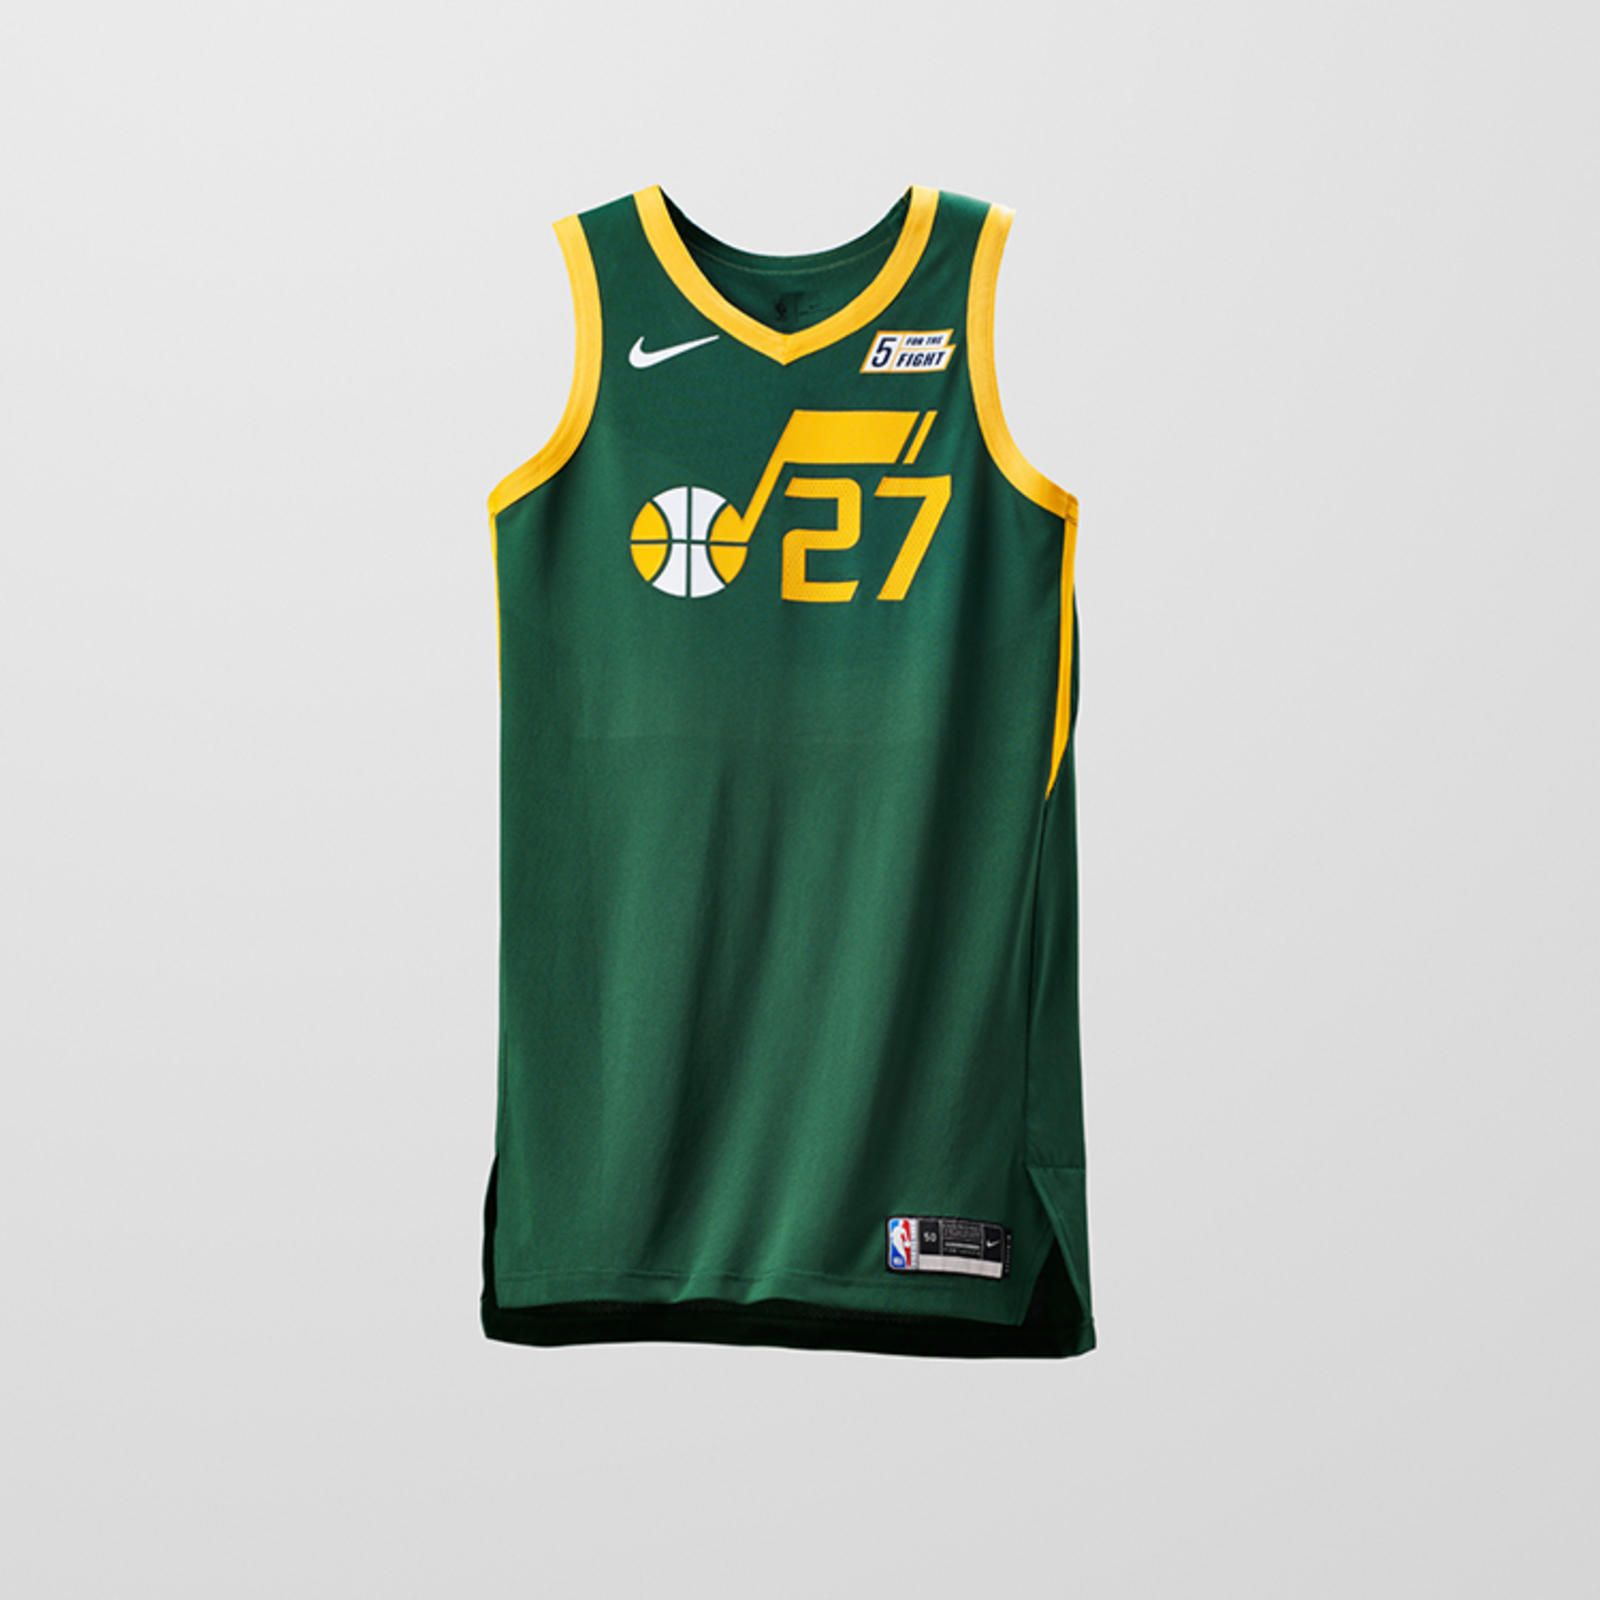 Introducing the Nike x NBA EARNED Edition Uniforms 7 2cb02dfb9